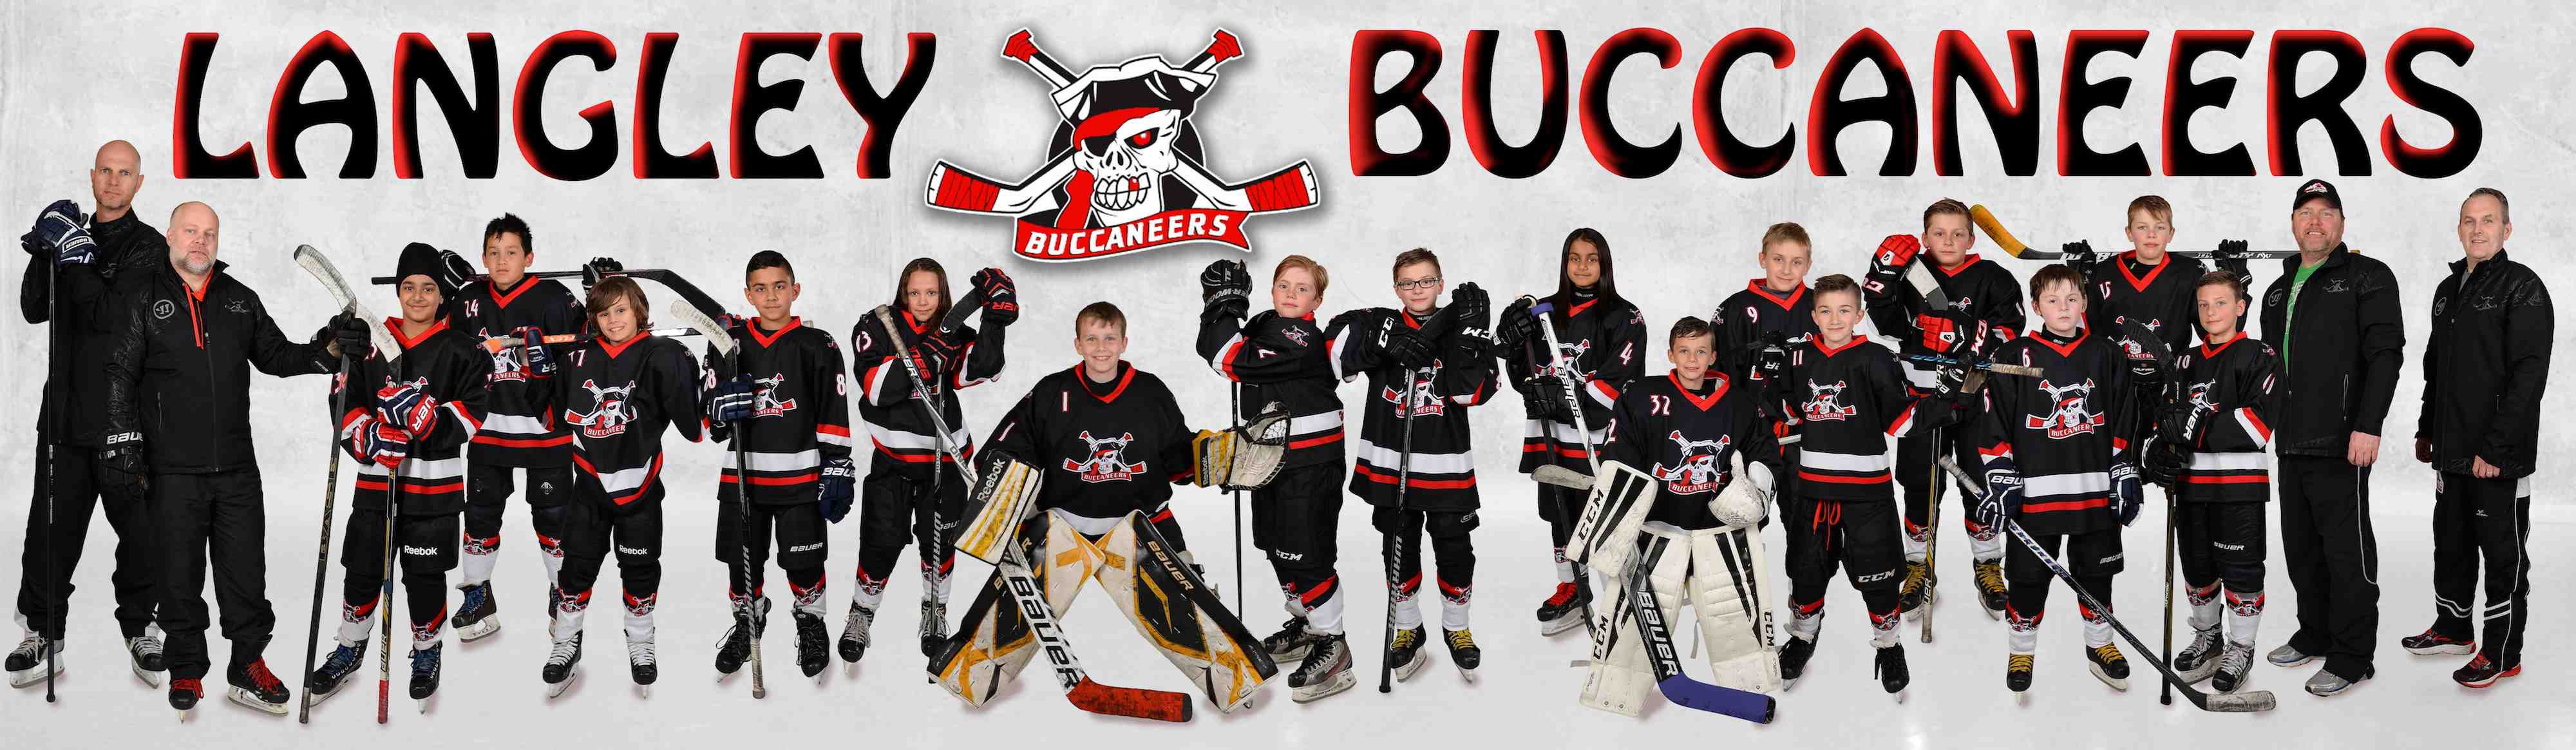 Langley_Buccaneers_06blacks